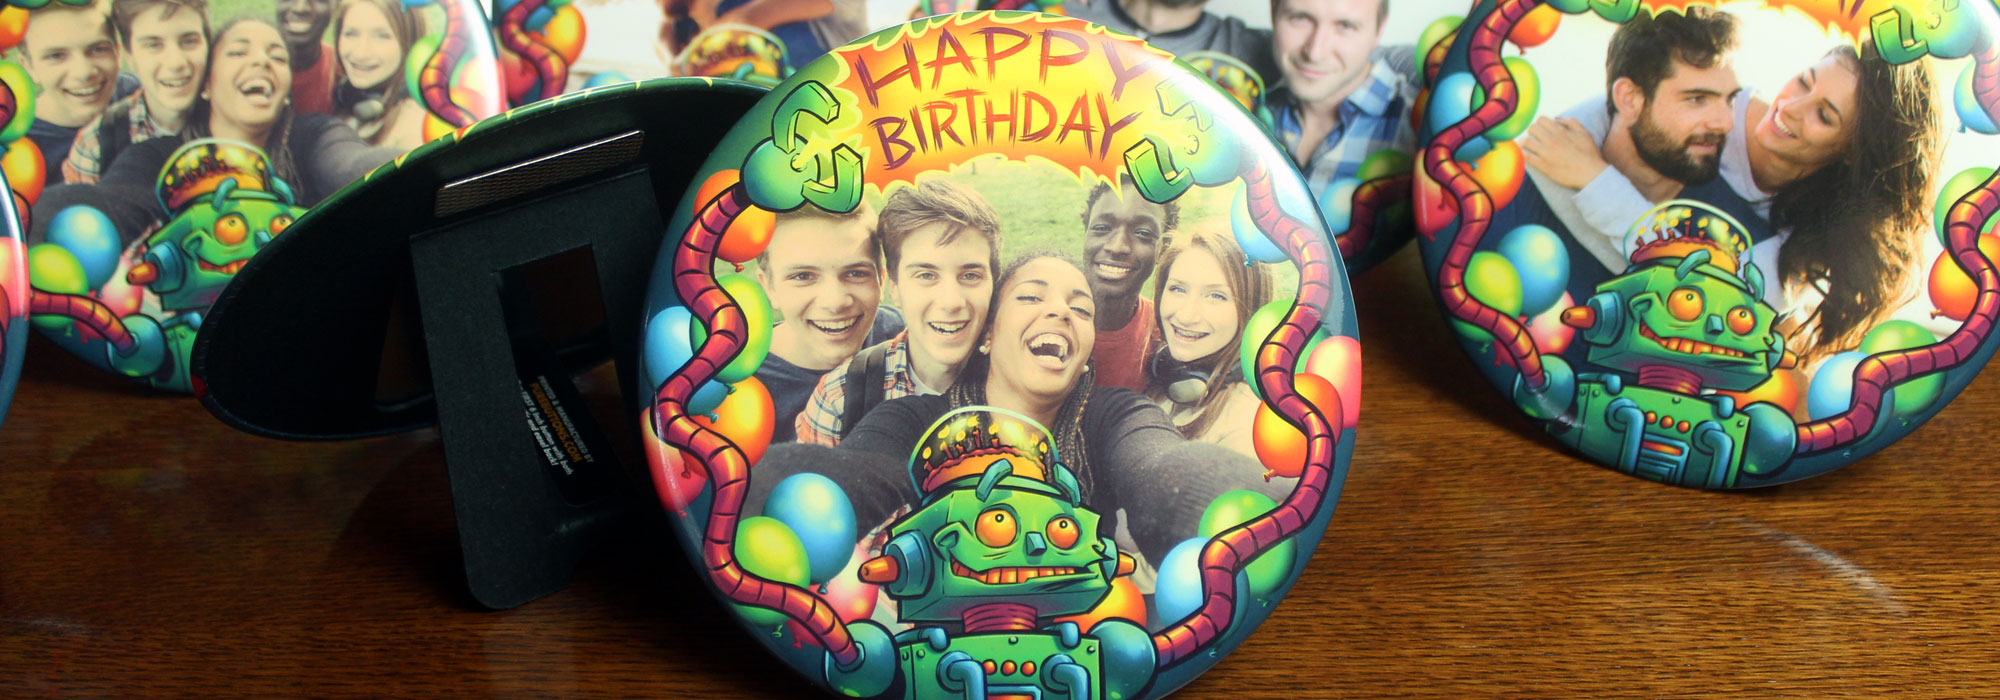 Robot Birthday 6 Inch Magnetic Easel